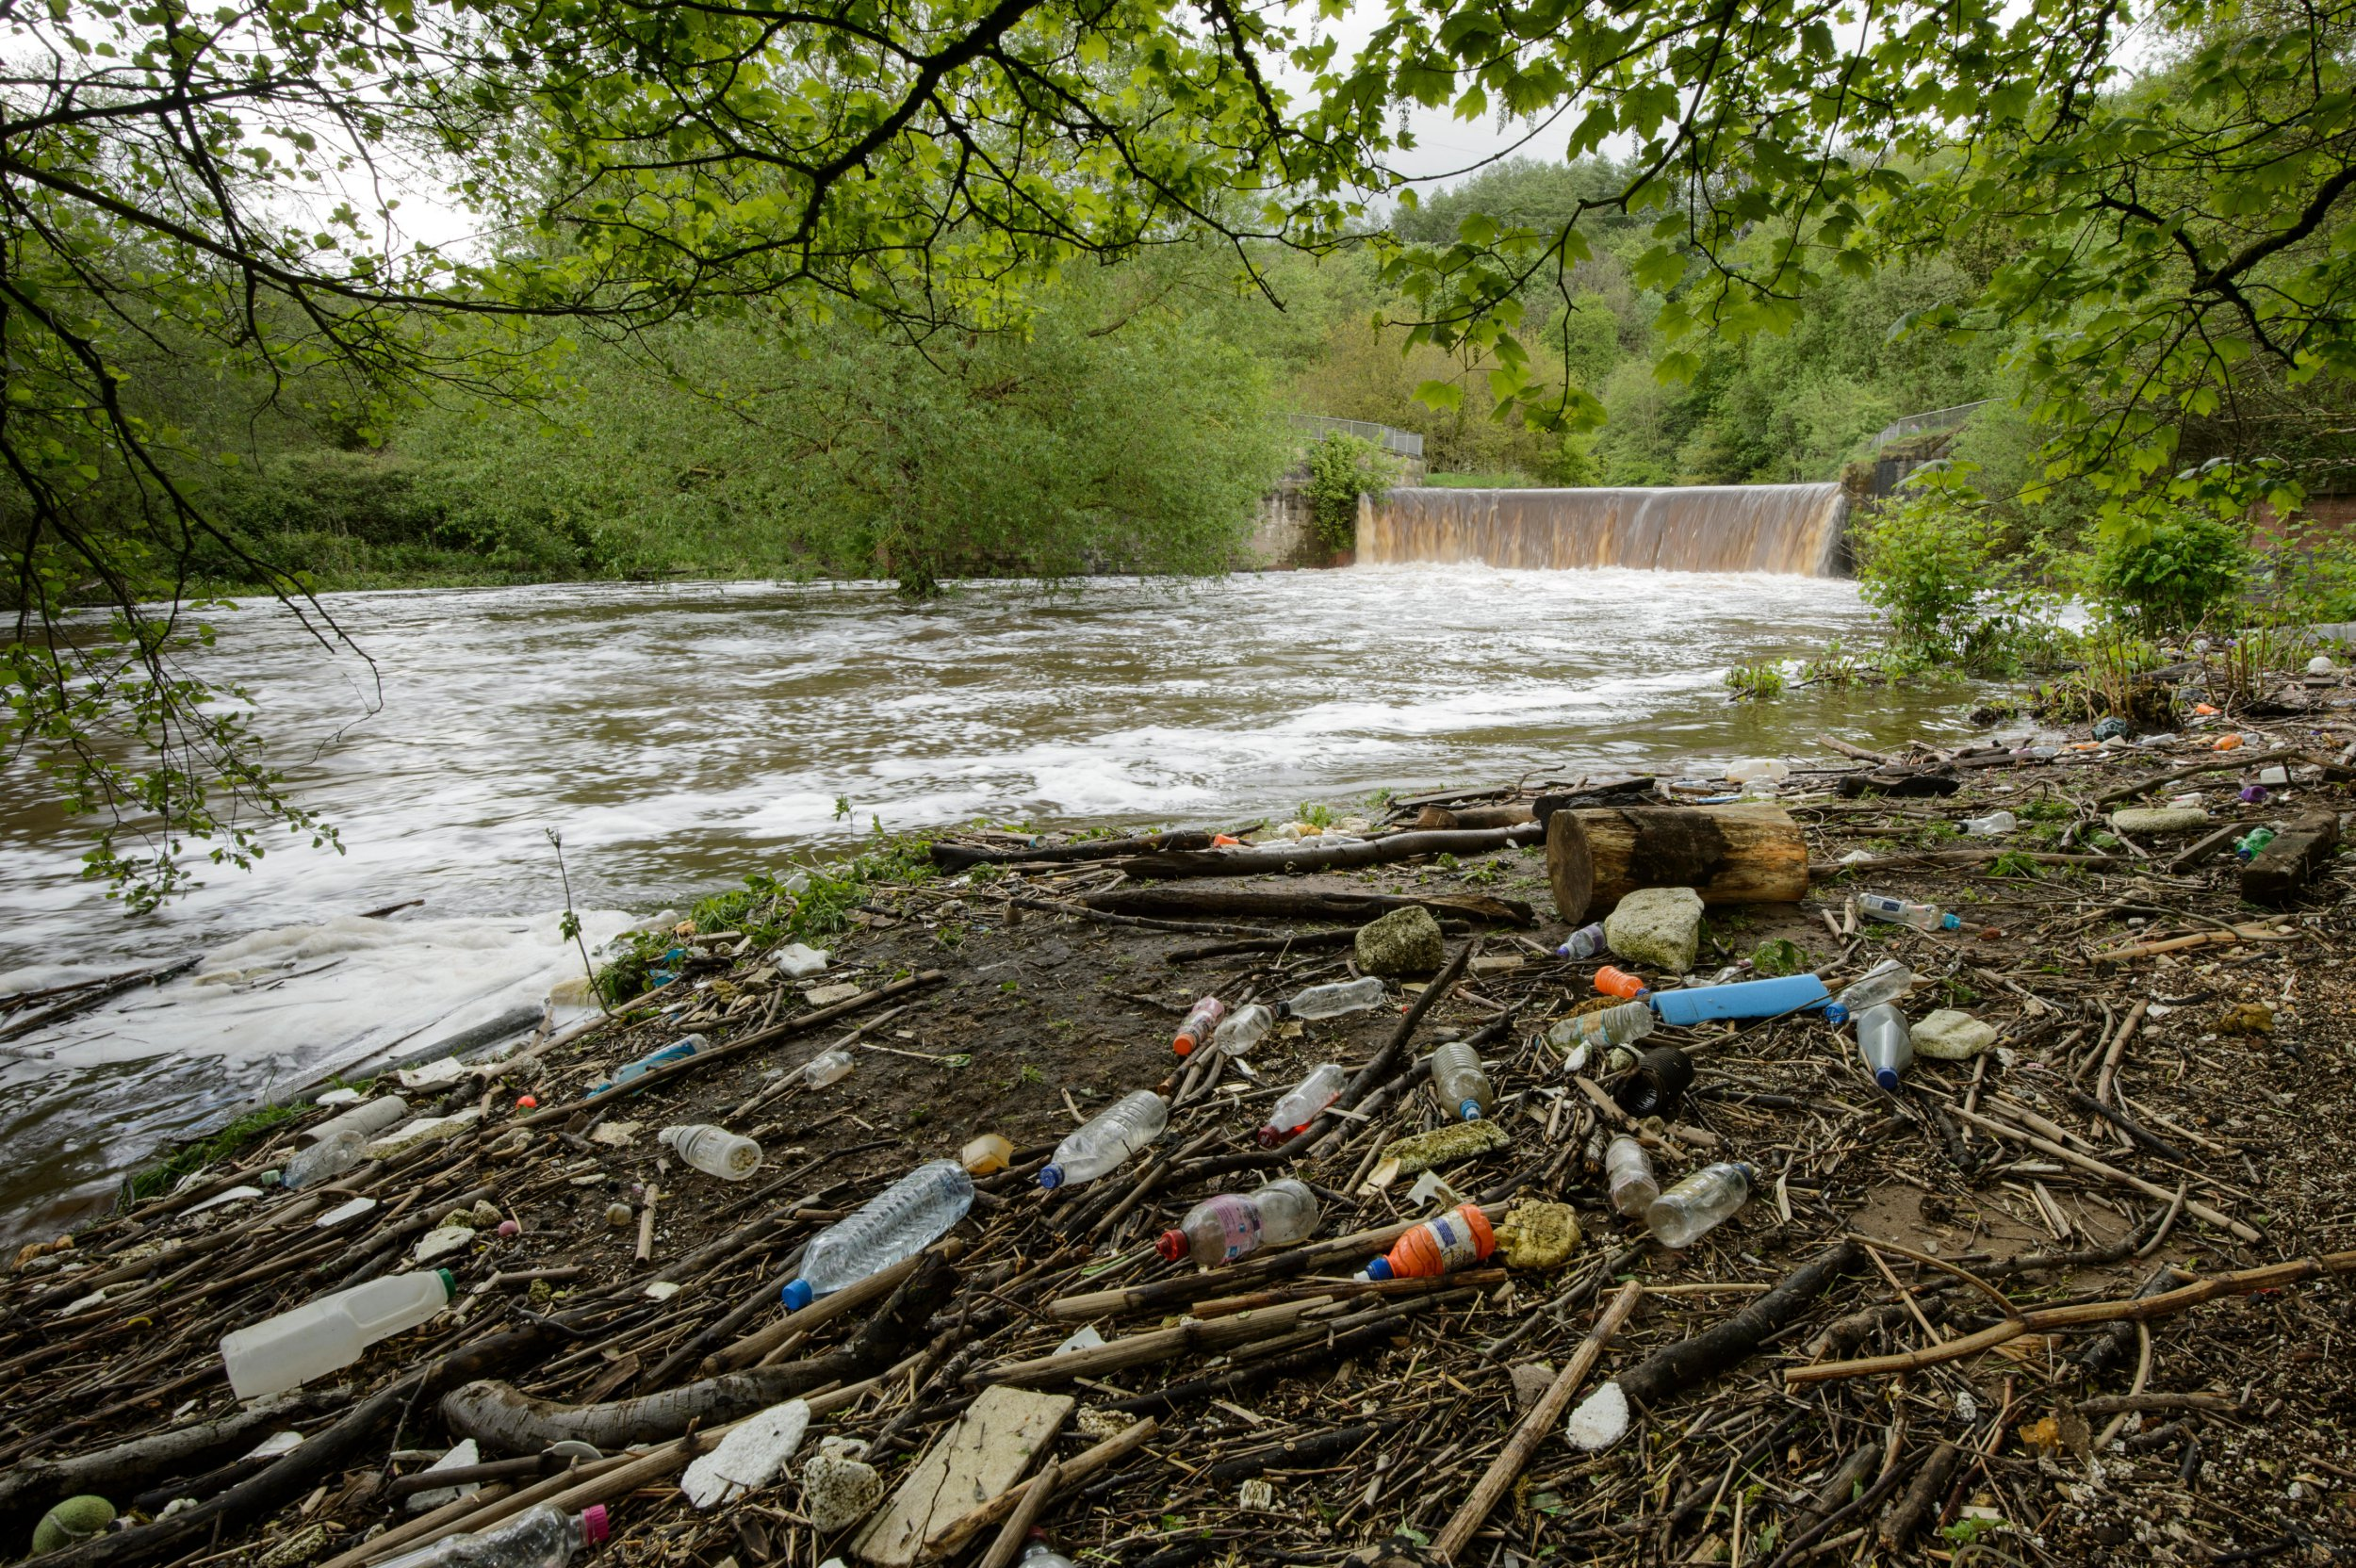 K2DCE8 Rubbish left behind by urban river in spate, River Tame, Manchester, UK May